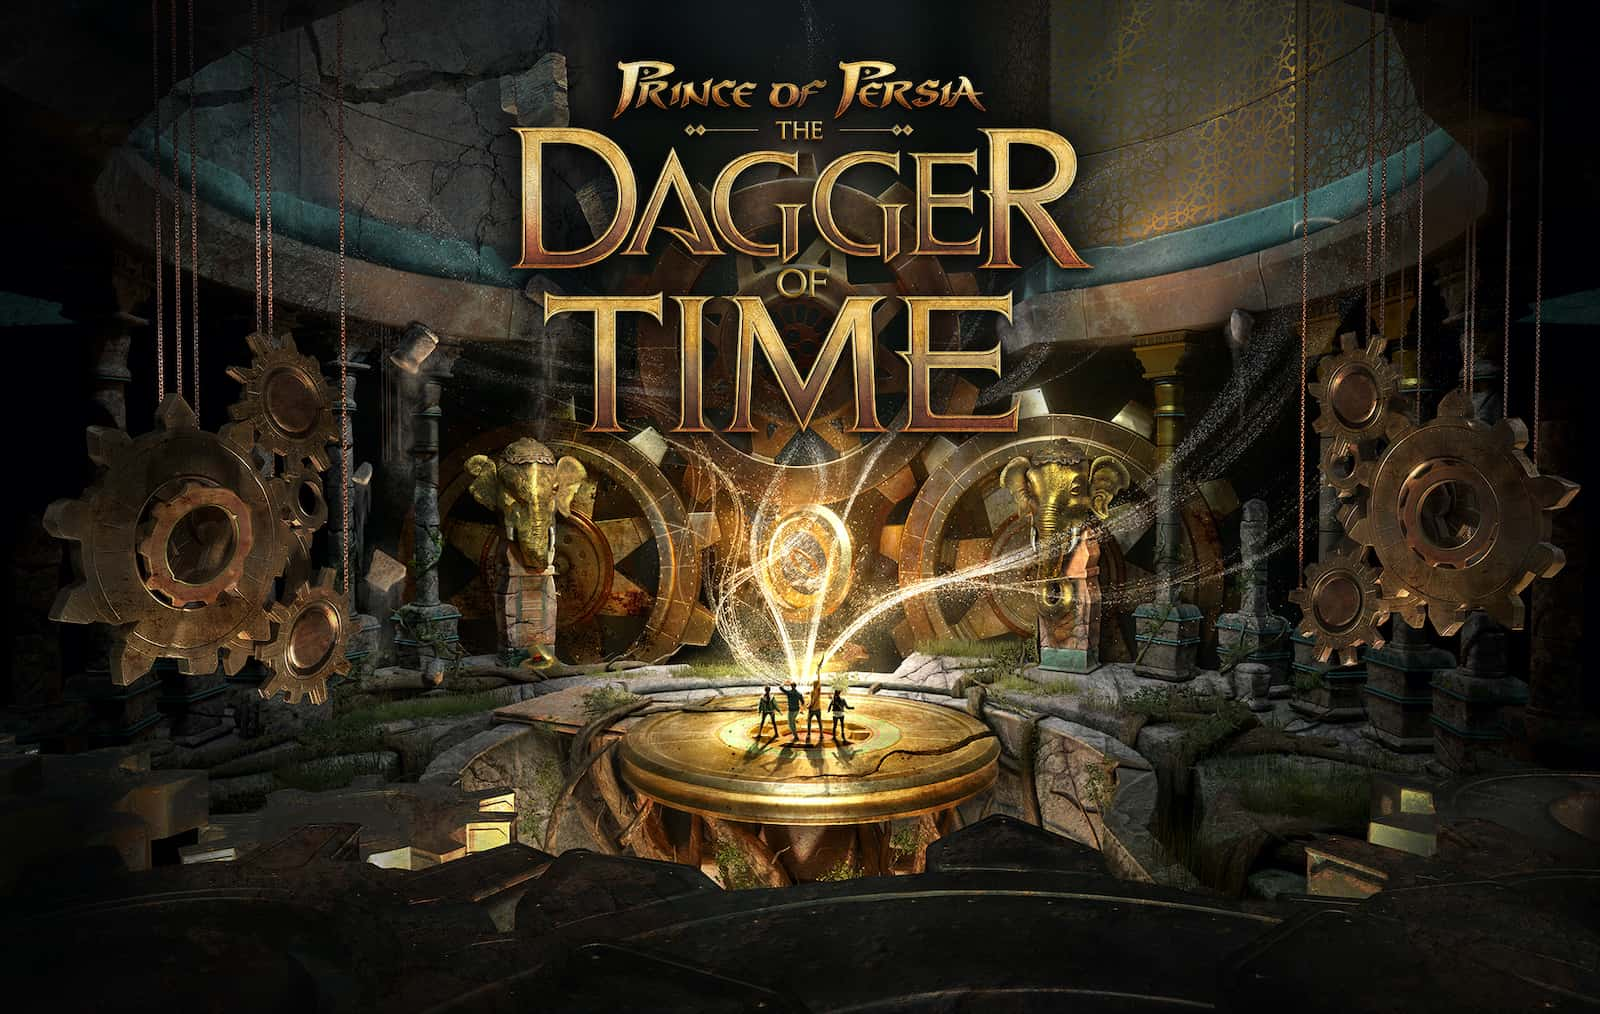 Dagger of Time Prince of Persia Ubisoft VR escape game IP themed attractions